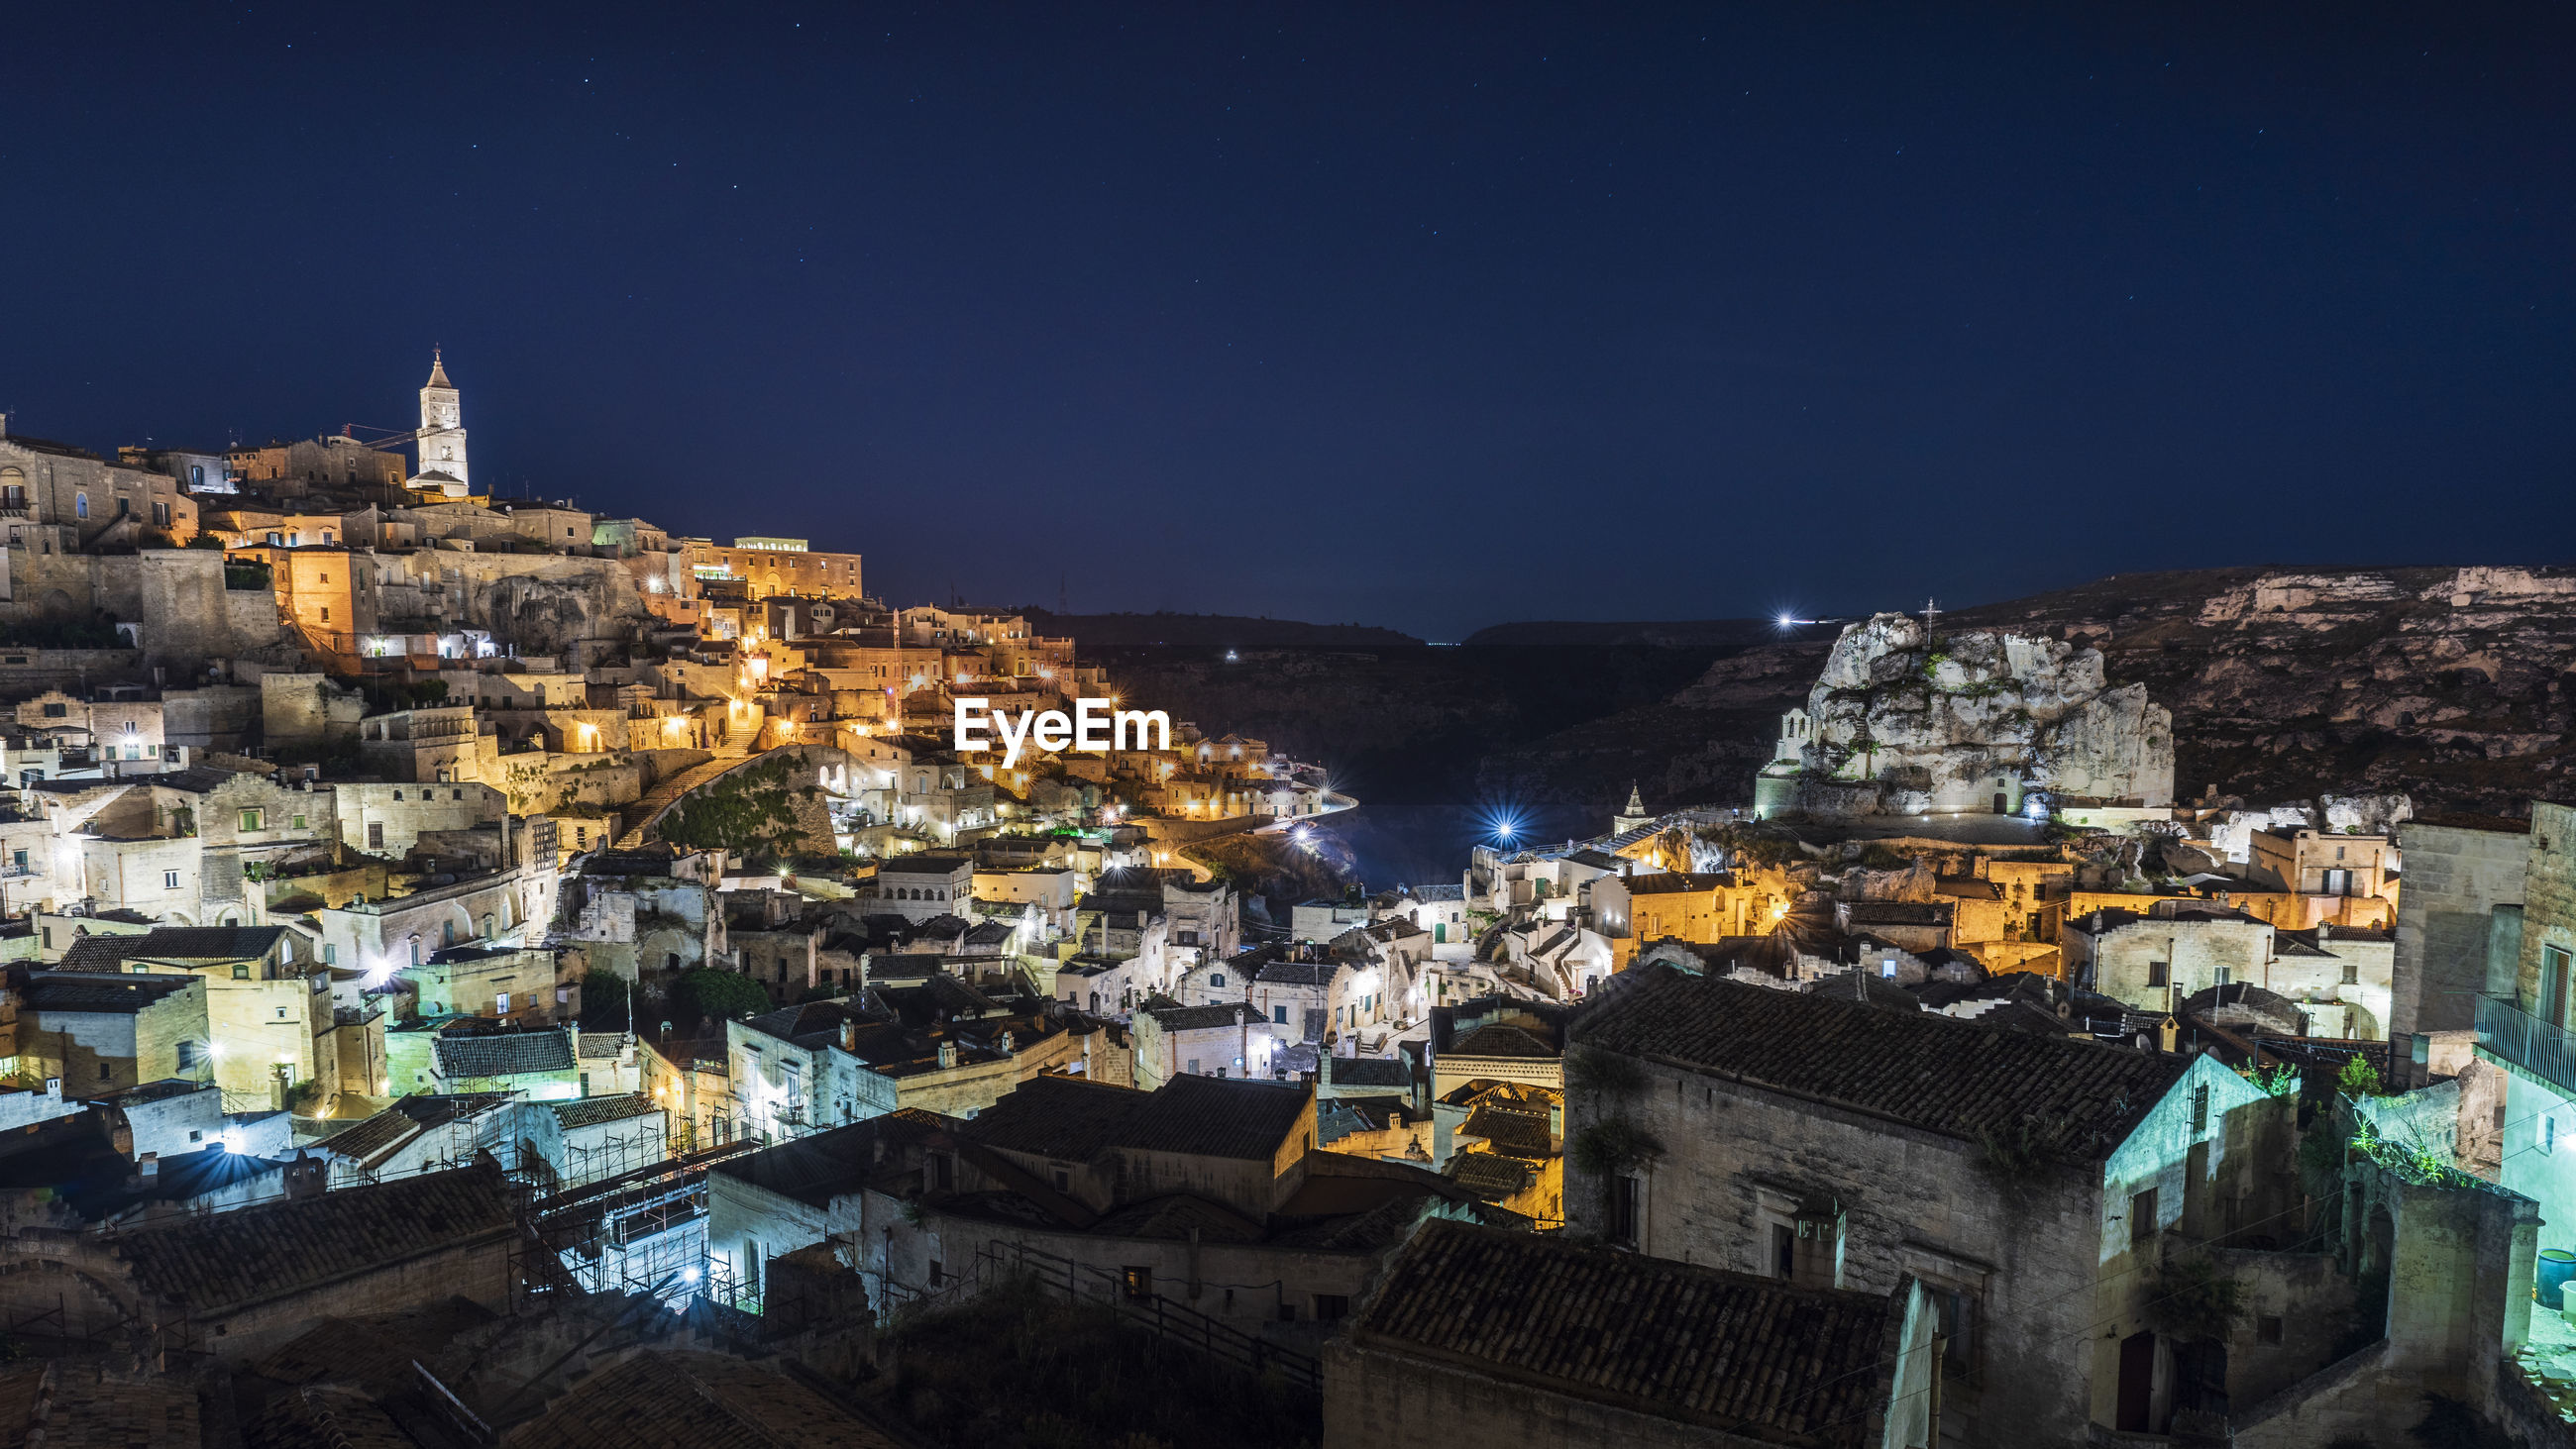 HIGH ANGLE SHOT OF ILLUMINATED TOWNSCAPE AGAINST SKY AT NIGHT